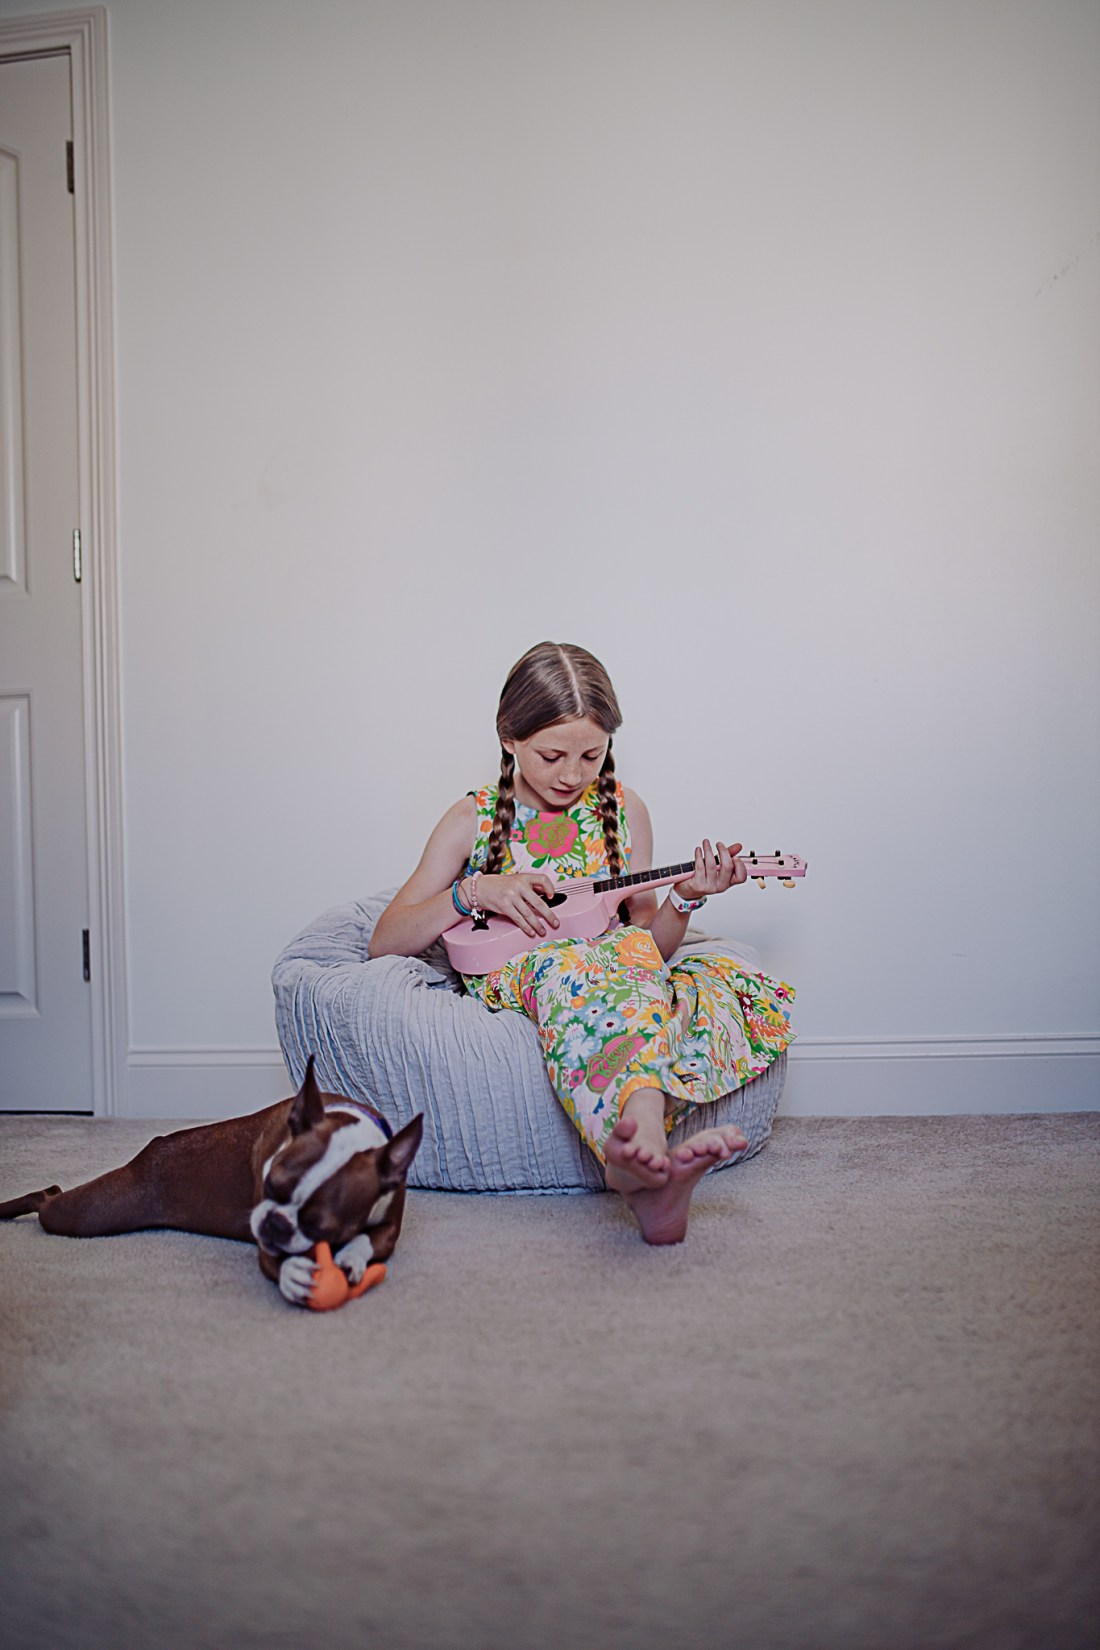 Kids Room by popular Nashville life and style blog, Modern Day Moguls: image of a young girls wearing a floral print dress with two braids in her hair and sitting on a grey bean bag and playing a pink ukulele.